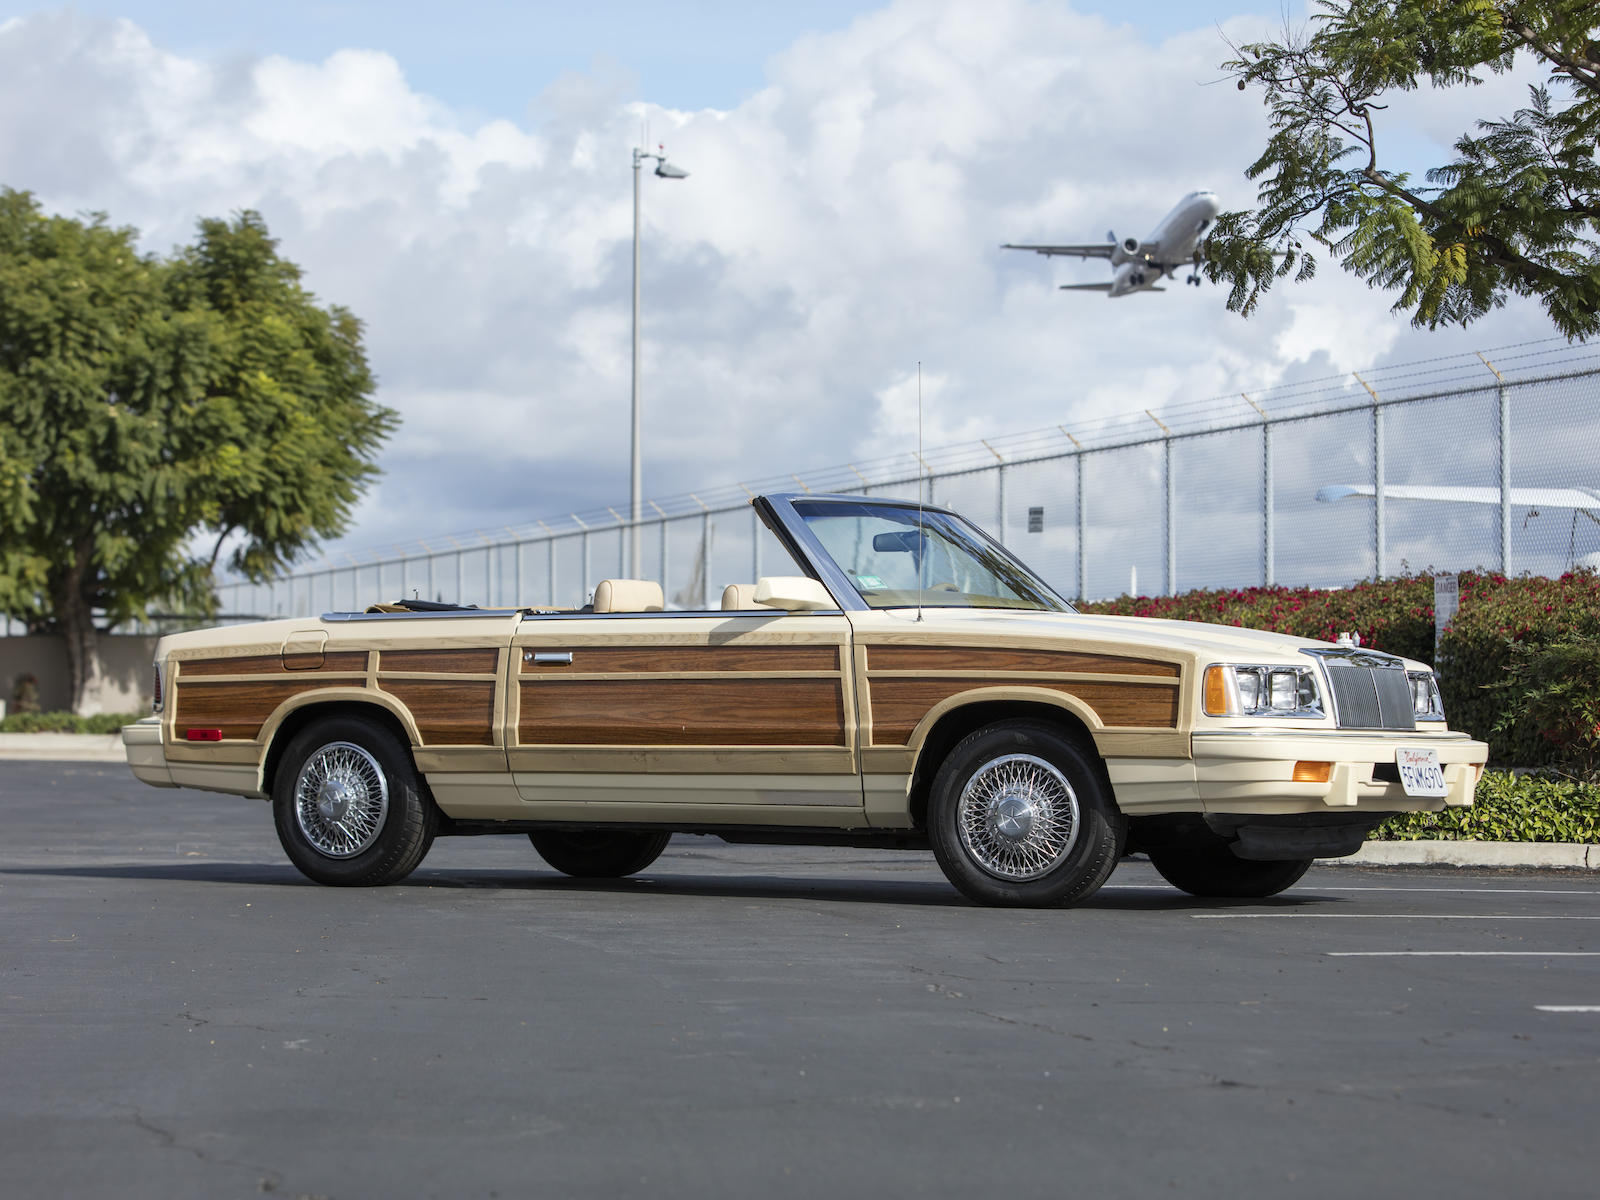 1986 Chrysler LeBaron Town & Country Convertible front three-quarter